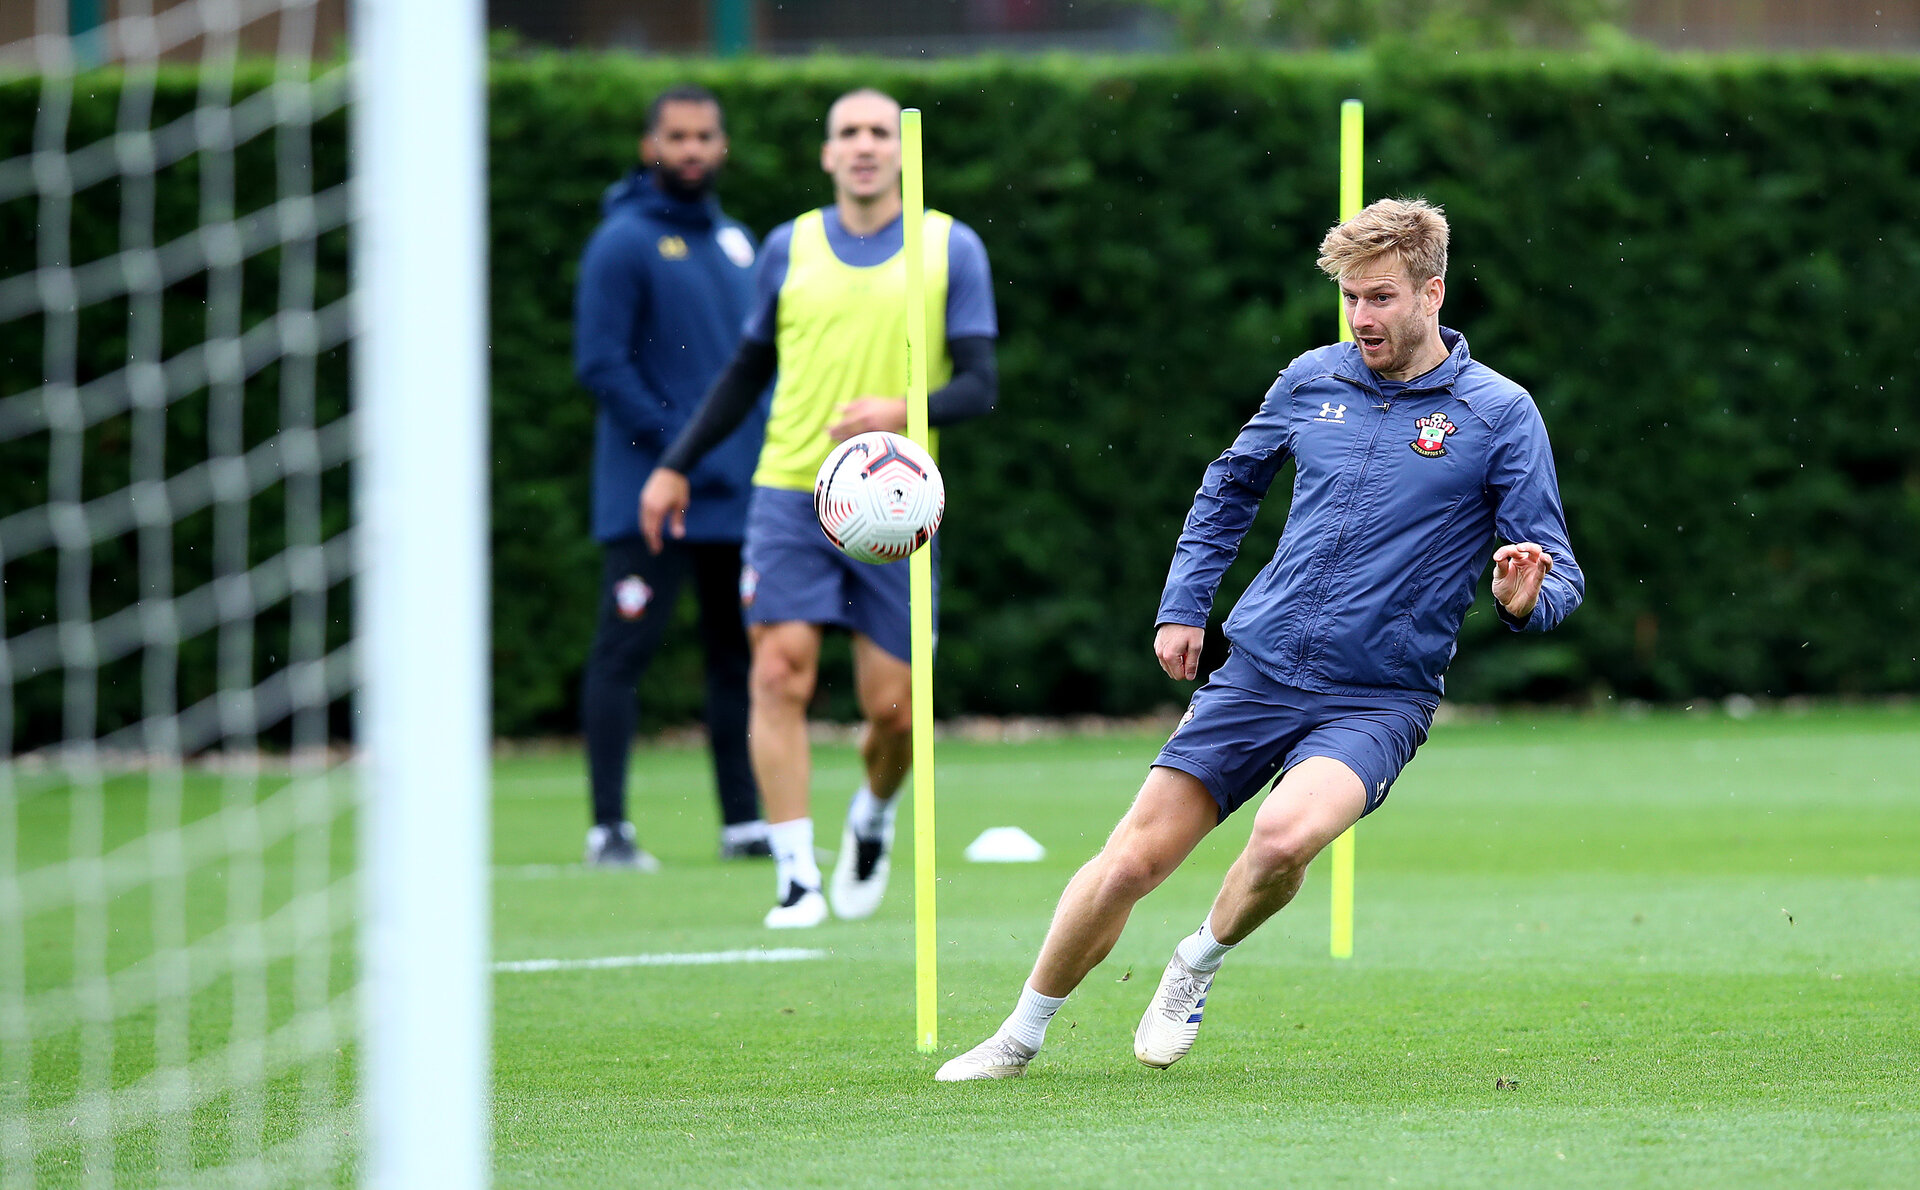 SOUTHAMPTON, ENGLAND - SEPTEMBER 30: Stuart Armstrong during a Southampton FC training session at the Staplewood Campus on September 30, 2020 in Southampton, England. (Photo by Matt Watson/Southampton FC via Getty Images)